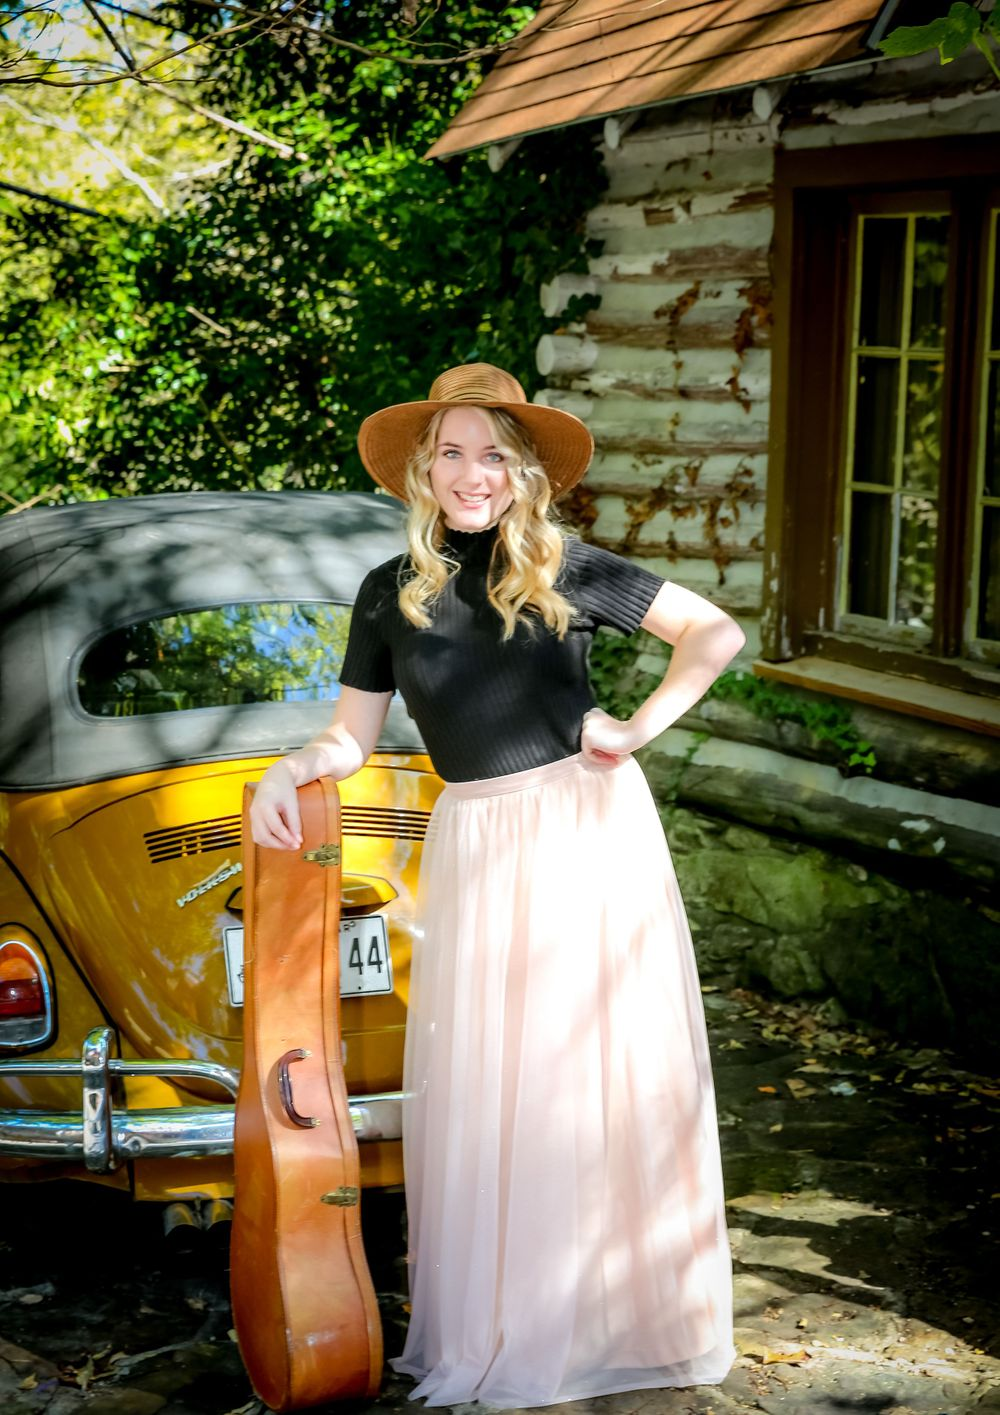 senior photographer eureka springs arkansas, looking for a senior photographer in eureka springs ar